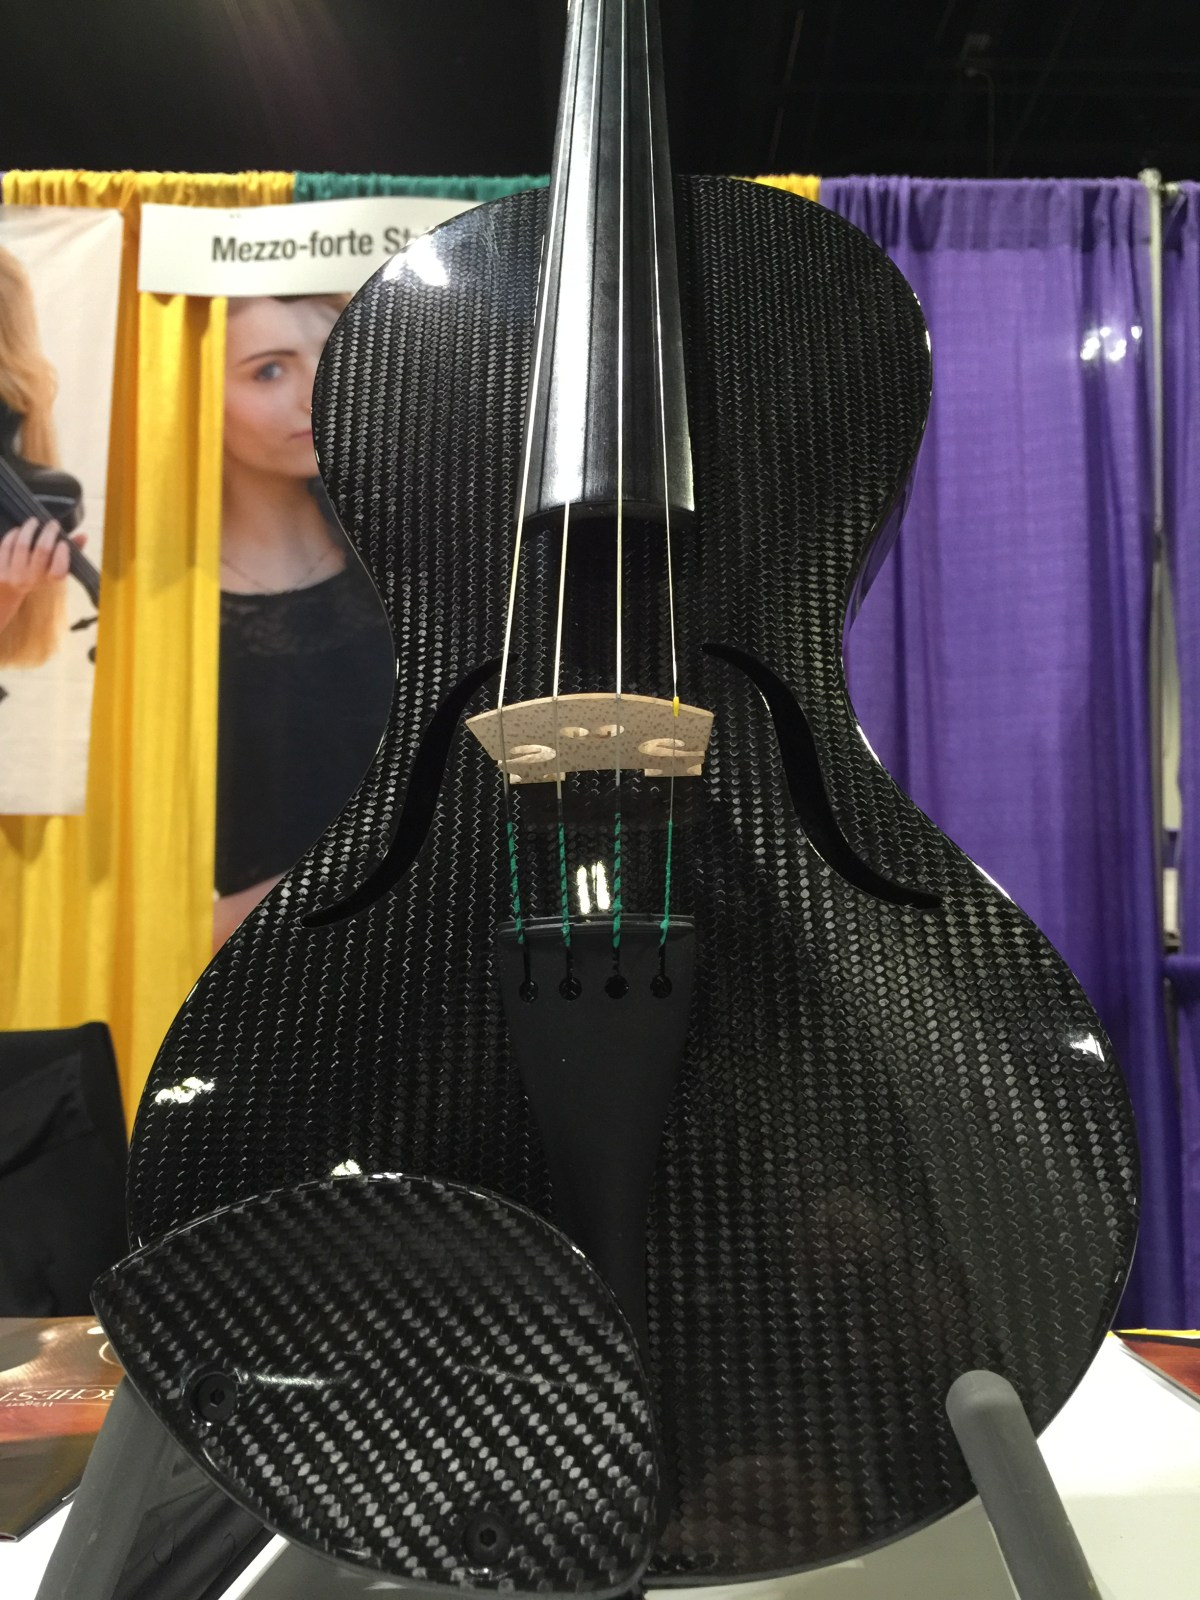 Mezzo-forte showed off some of its carbon-fiber instruments.